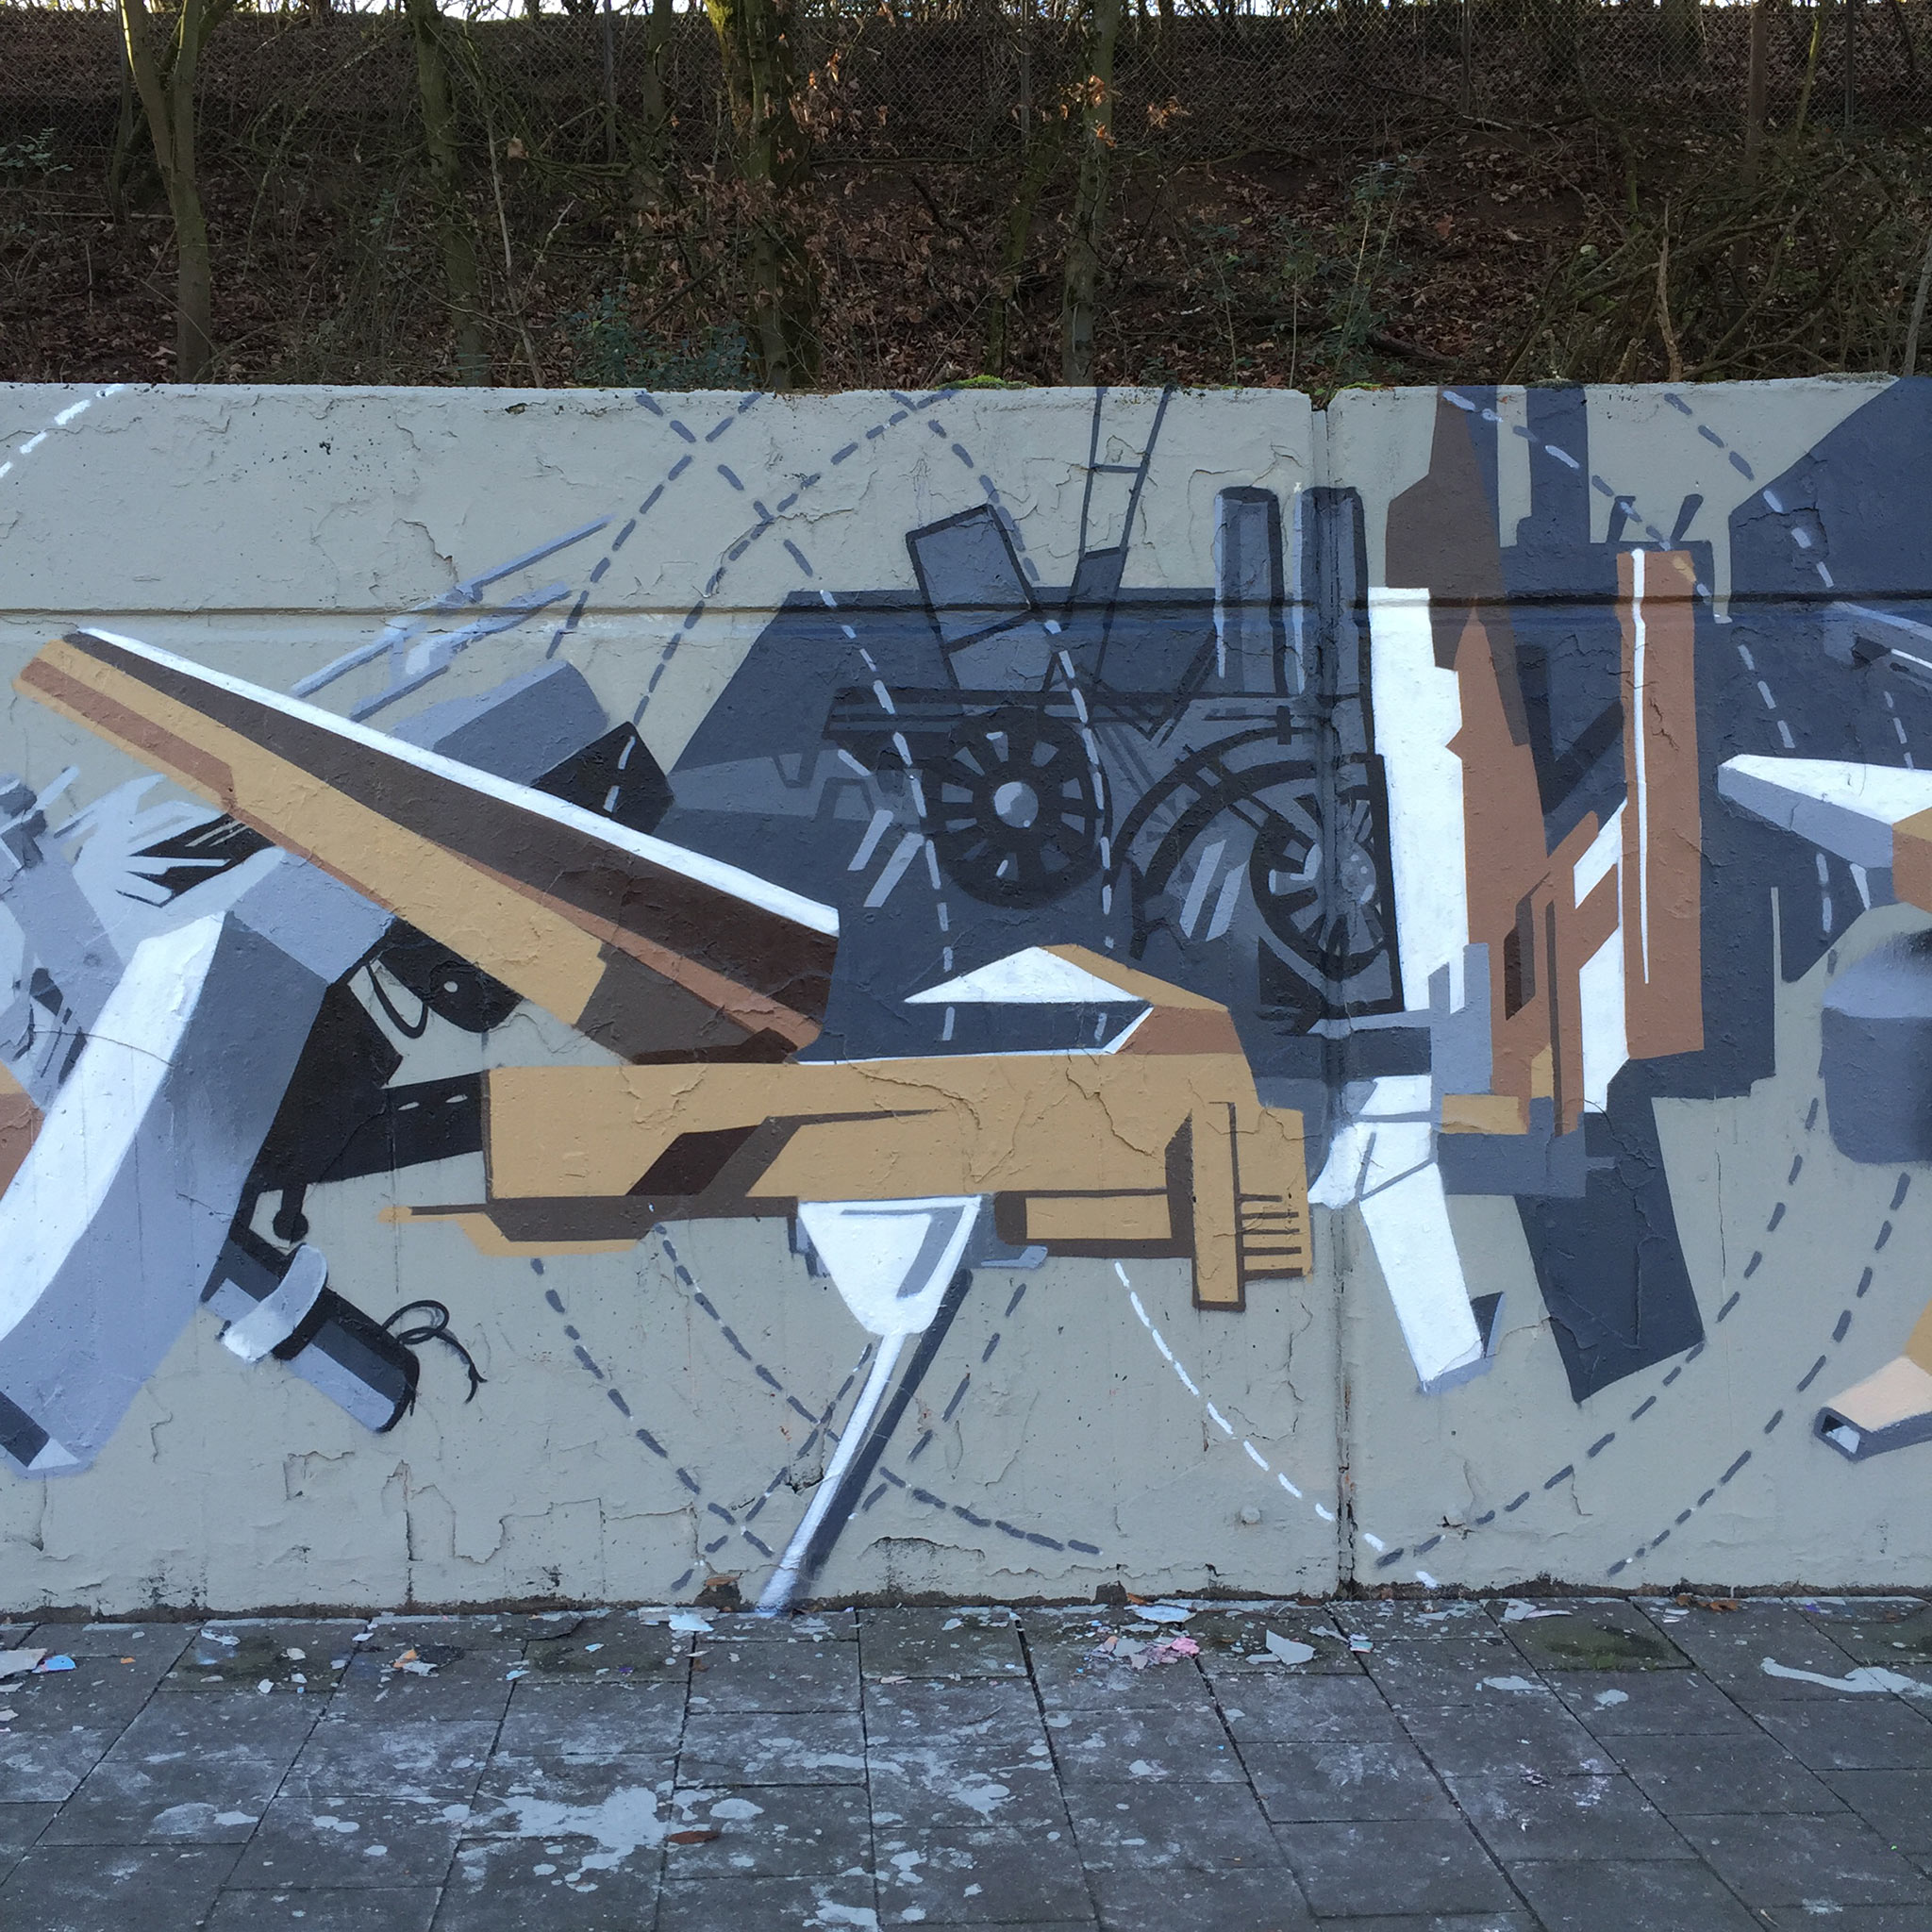 shogun_graffiti_neuss_konni_2